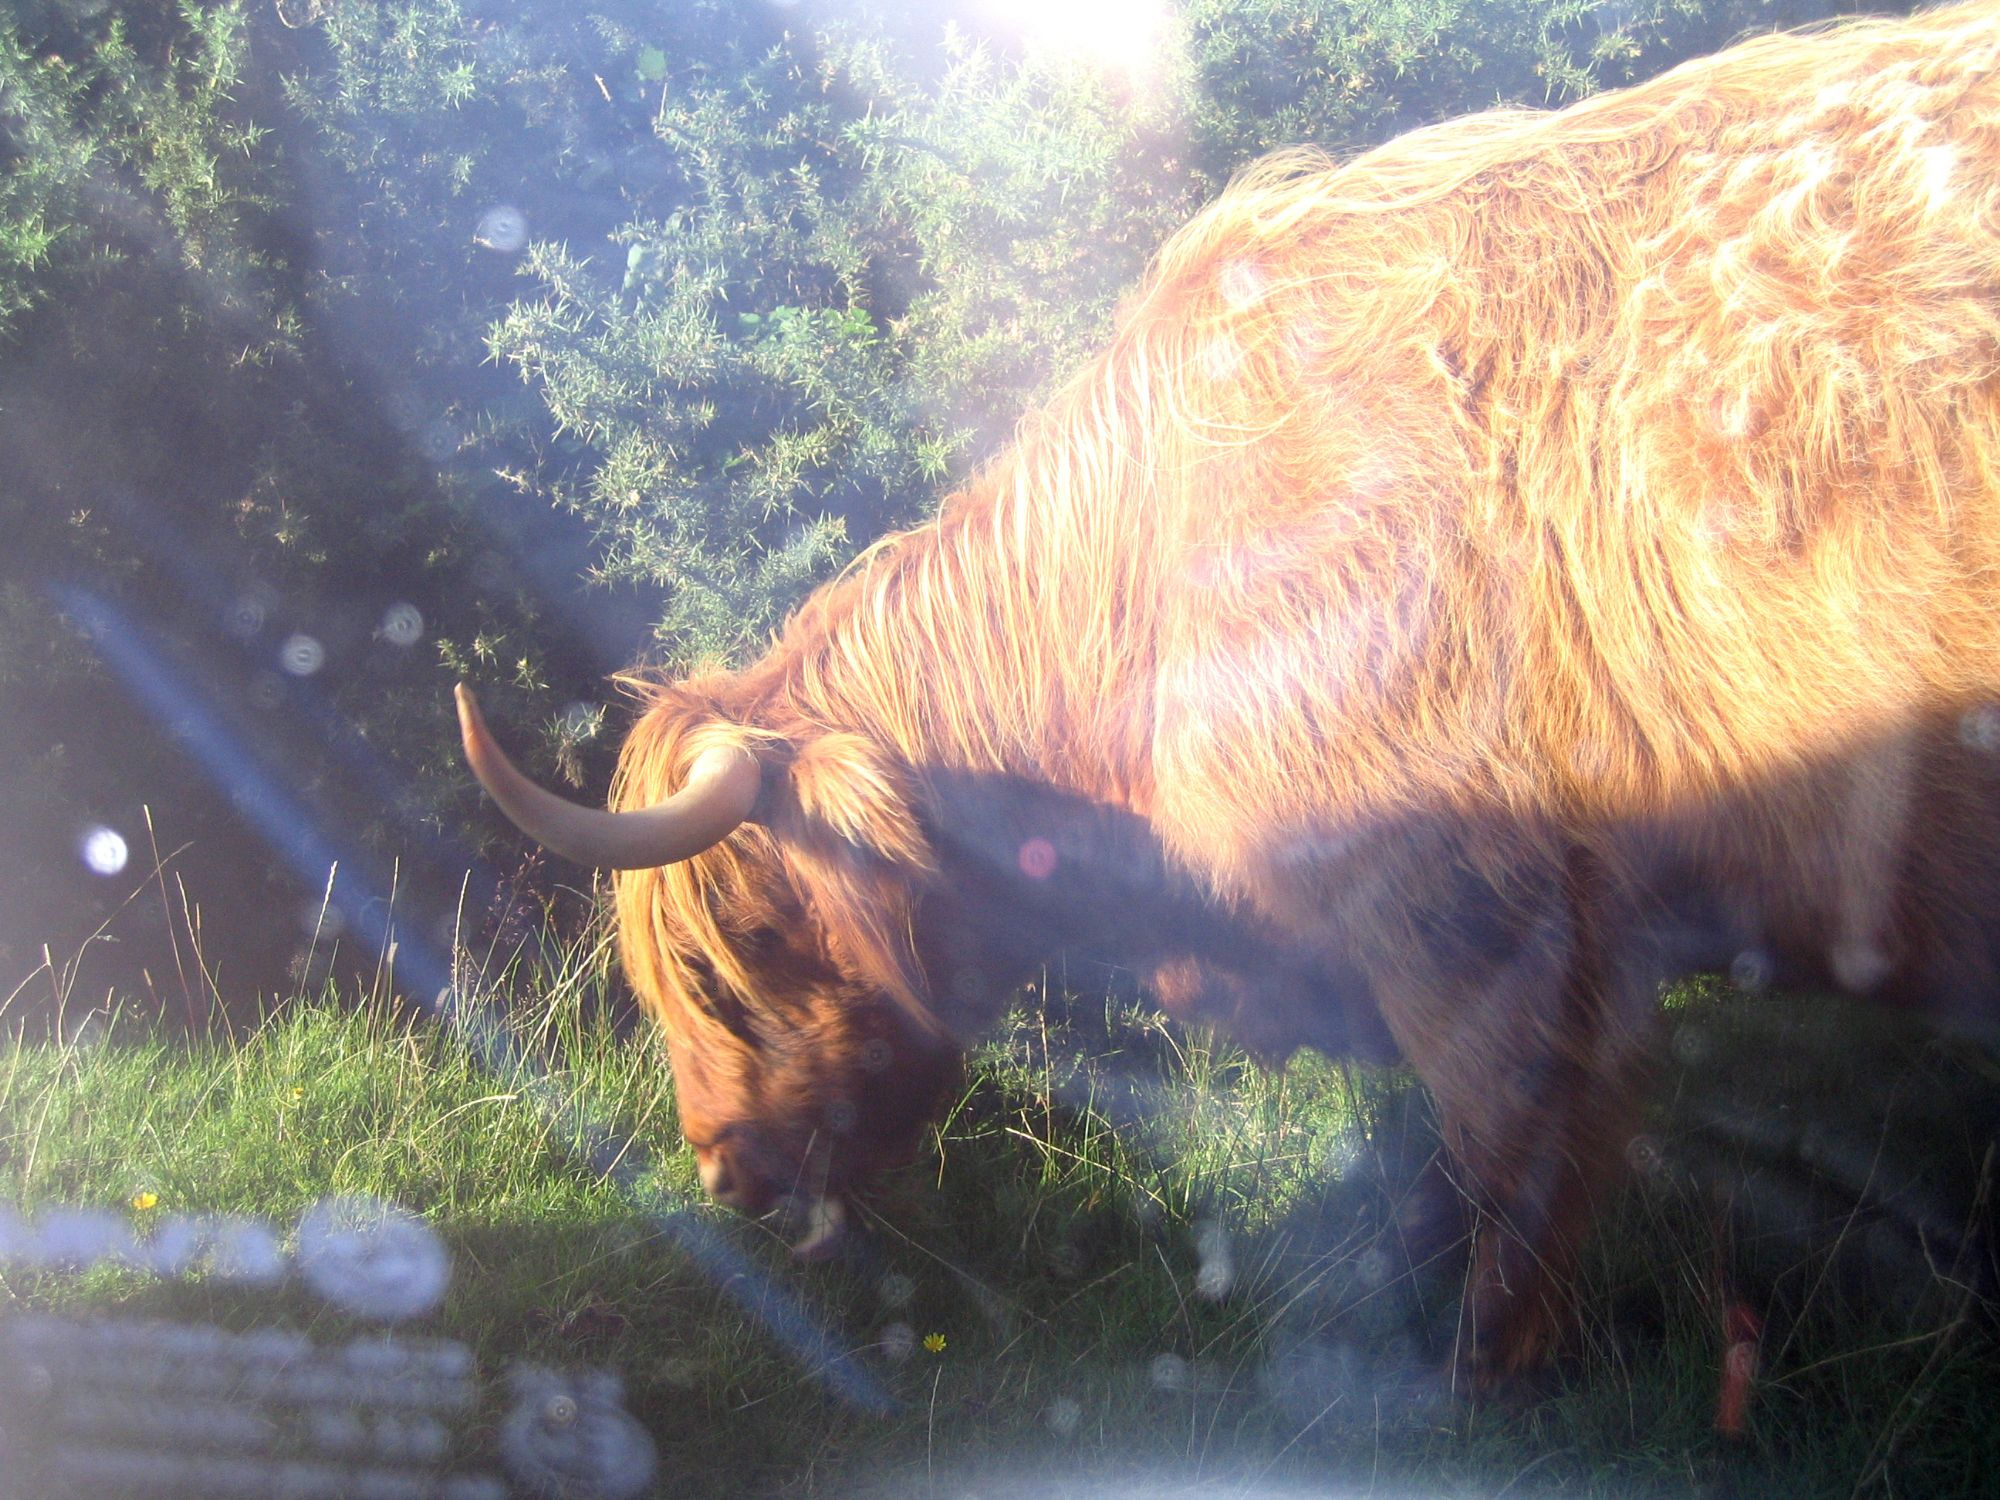 hairy coo from the bus